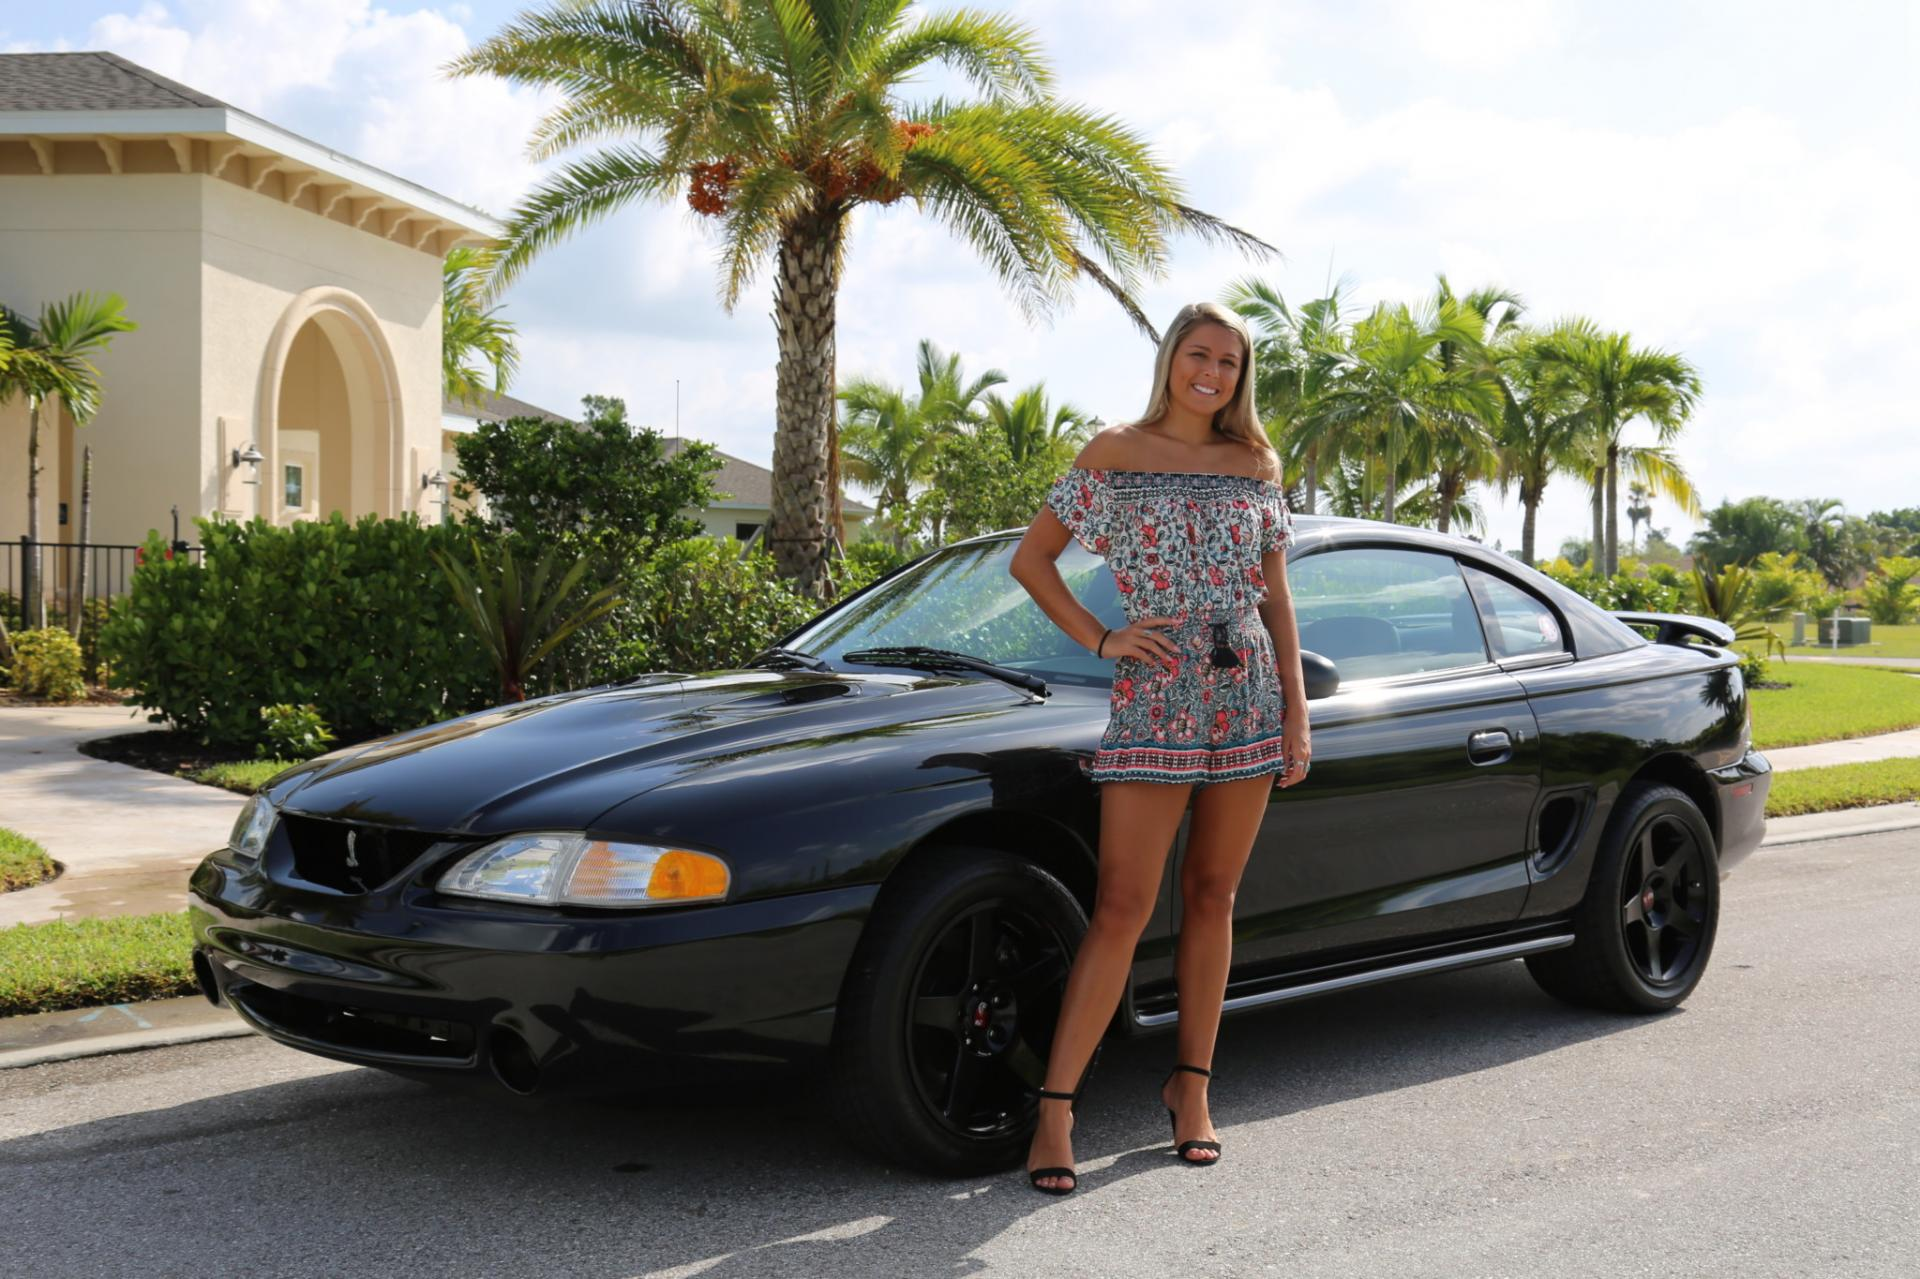 Used 1996 Mustang  Cobra SVT for sale $24,000 at Muscle Cars for Sale Inc. in Fort Myers FL 33912 1